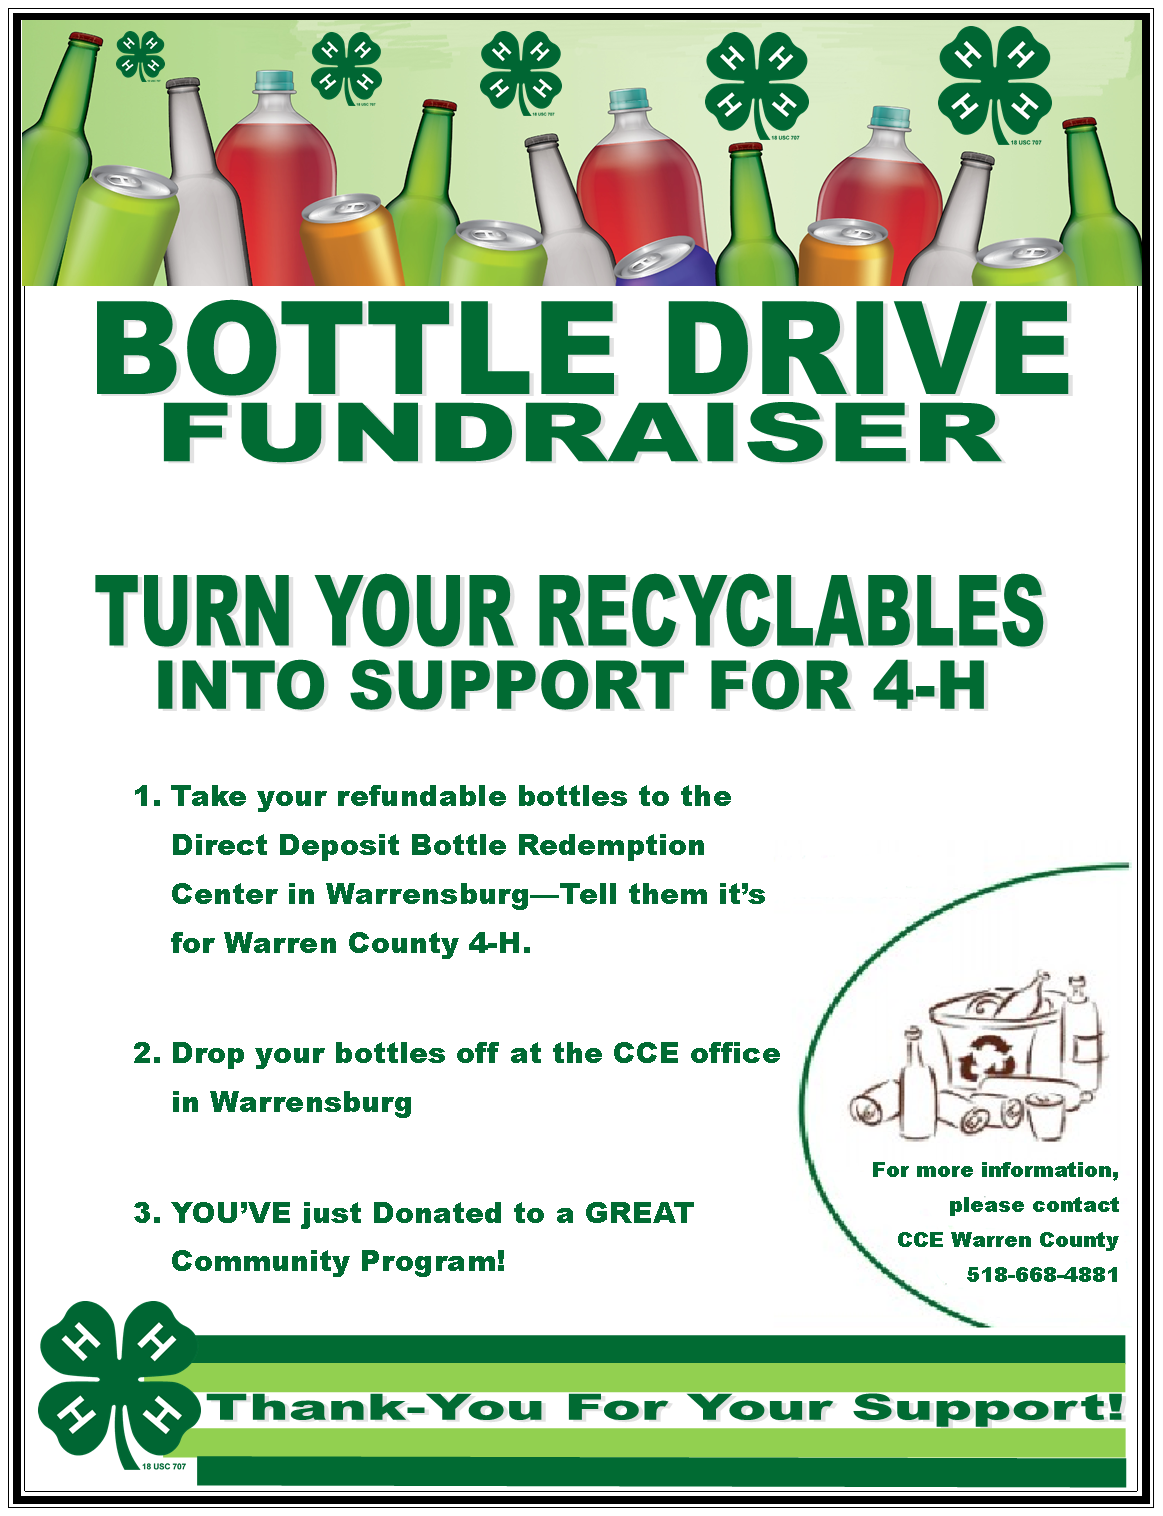 4-H Bottle Drive Fundraiser